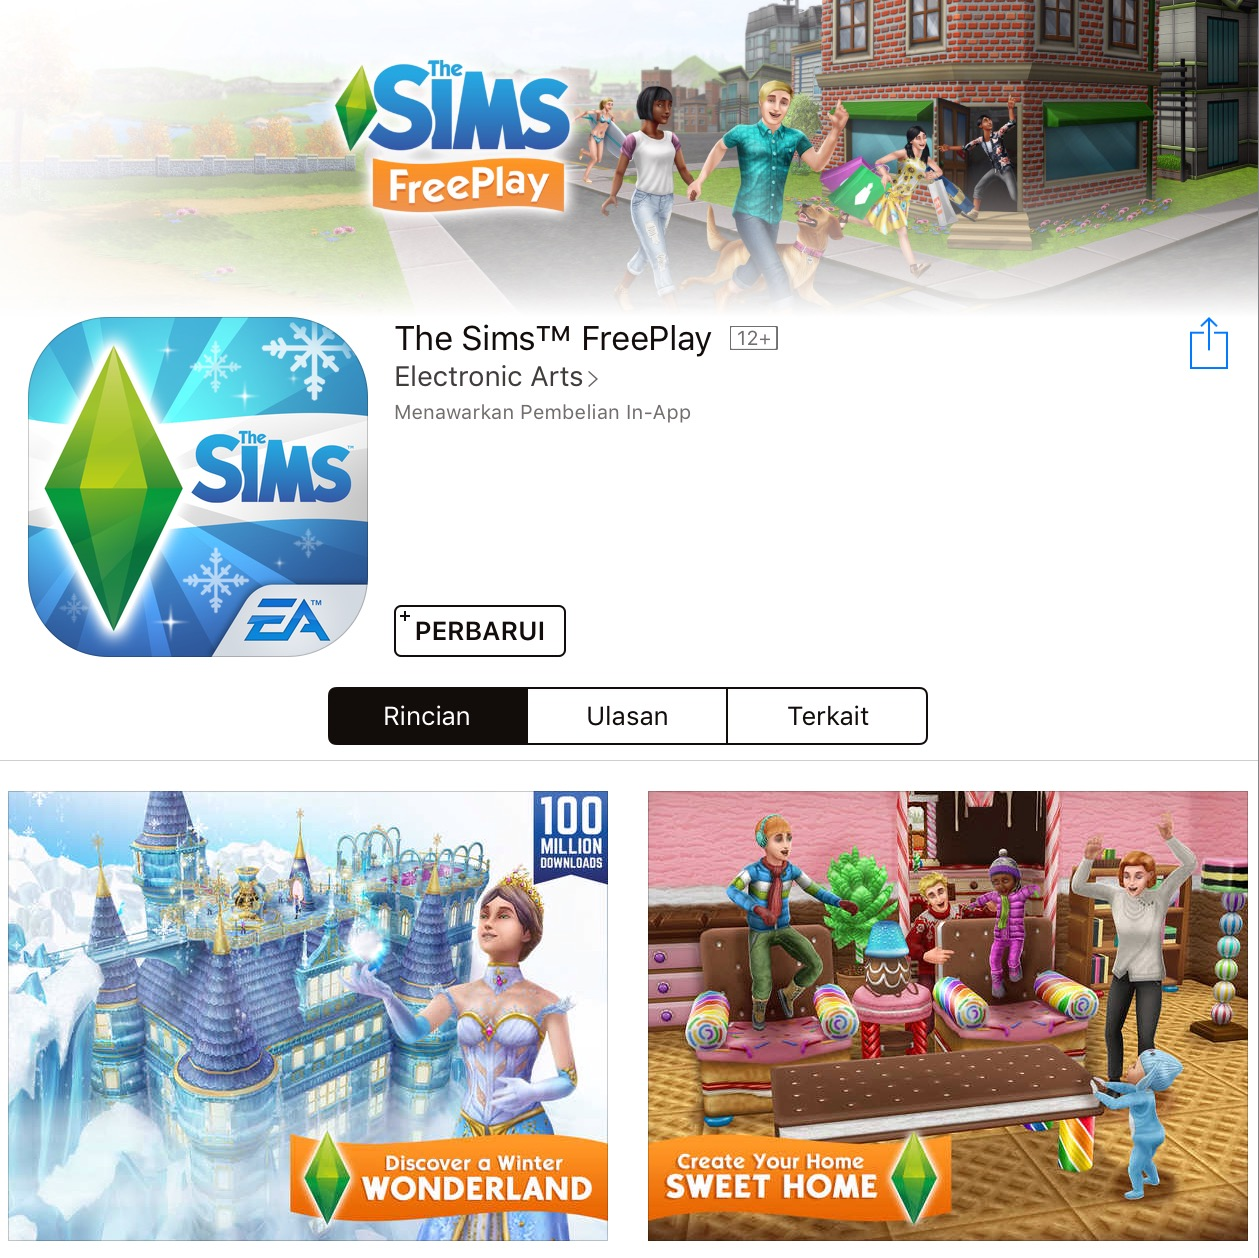 Plumbob News: The Sims FreePlay Christmas 2015 Update Available Now